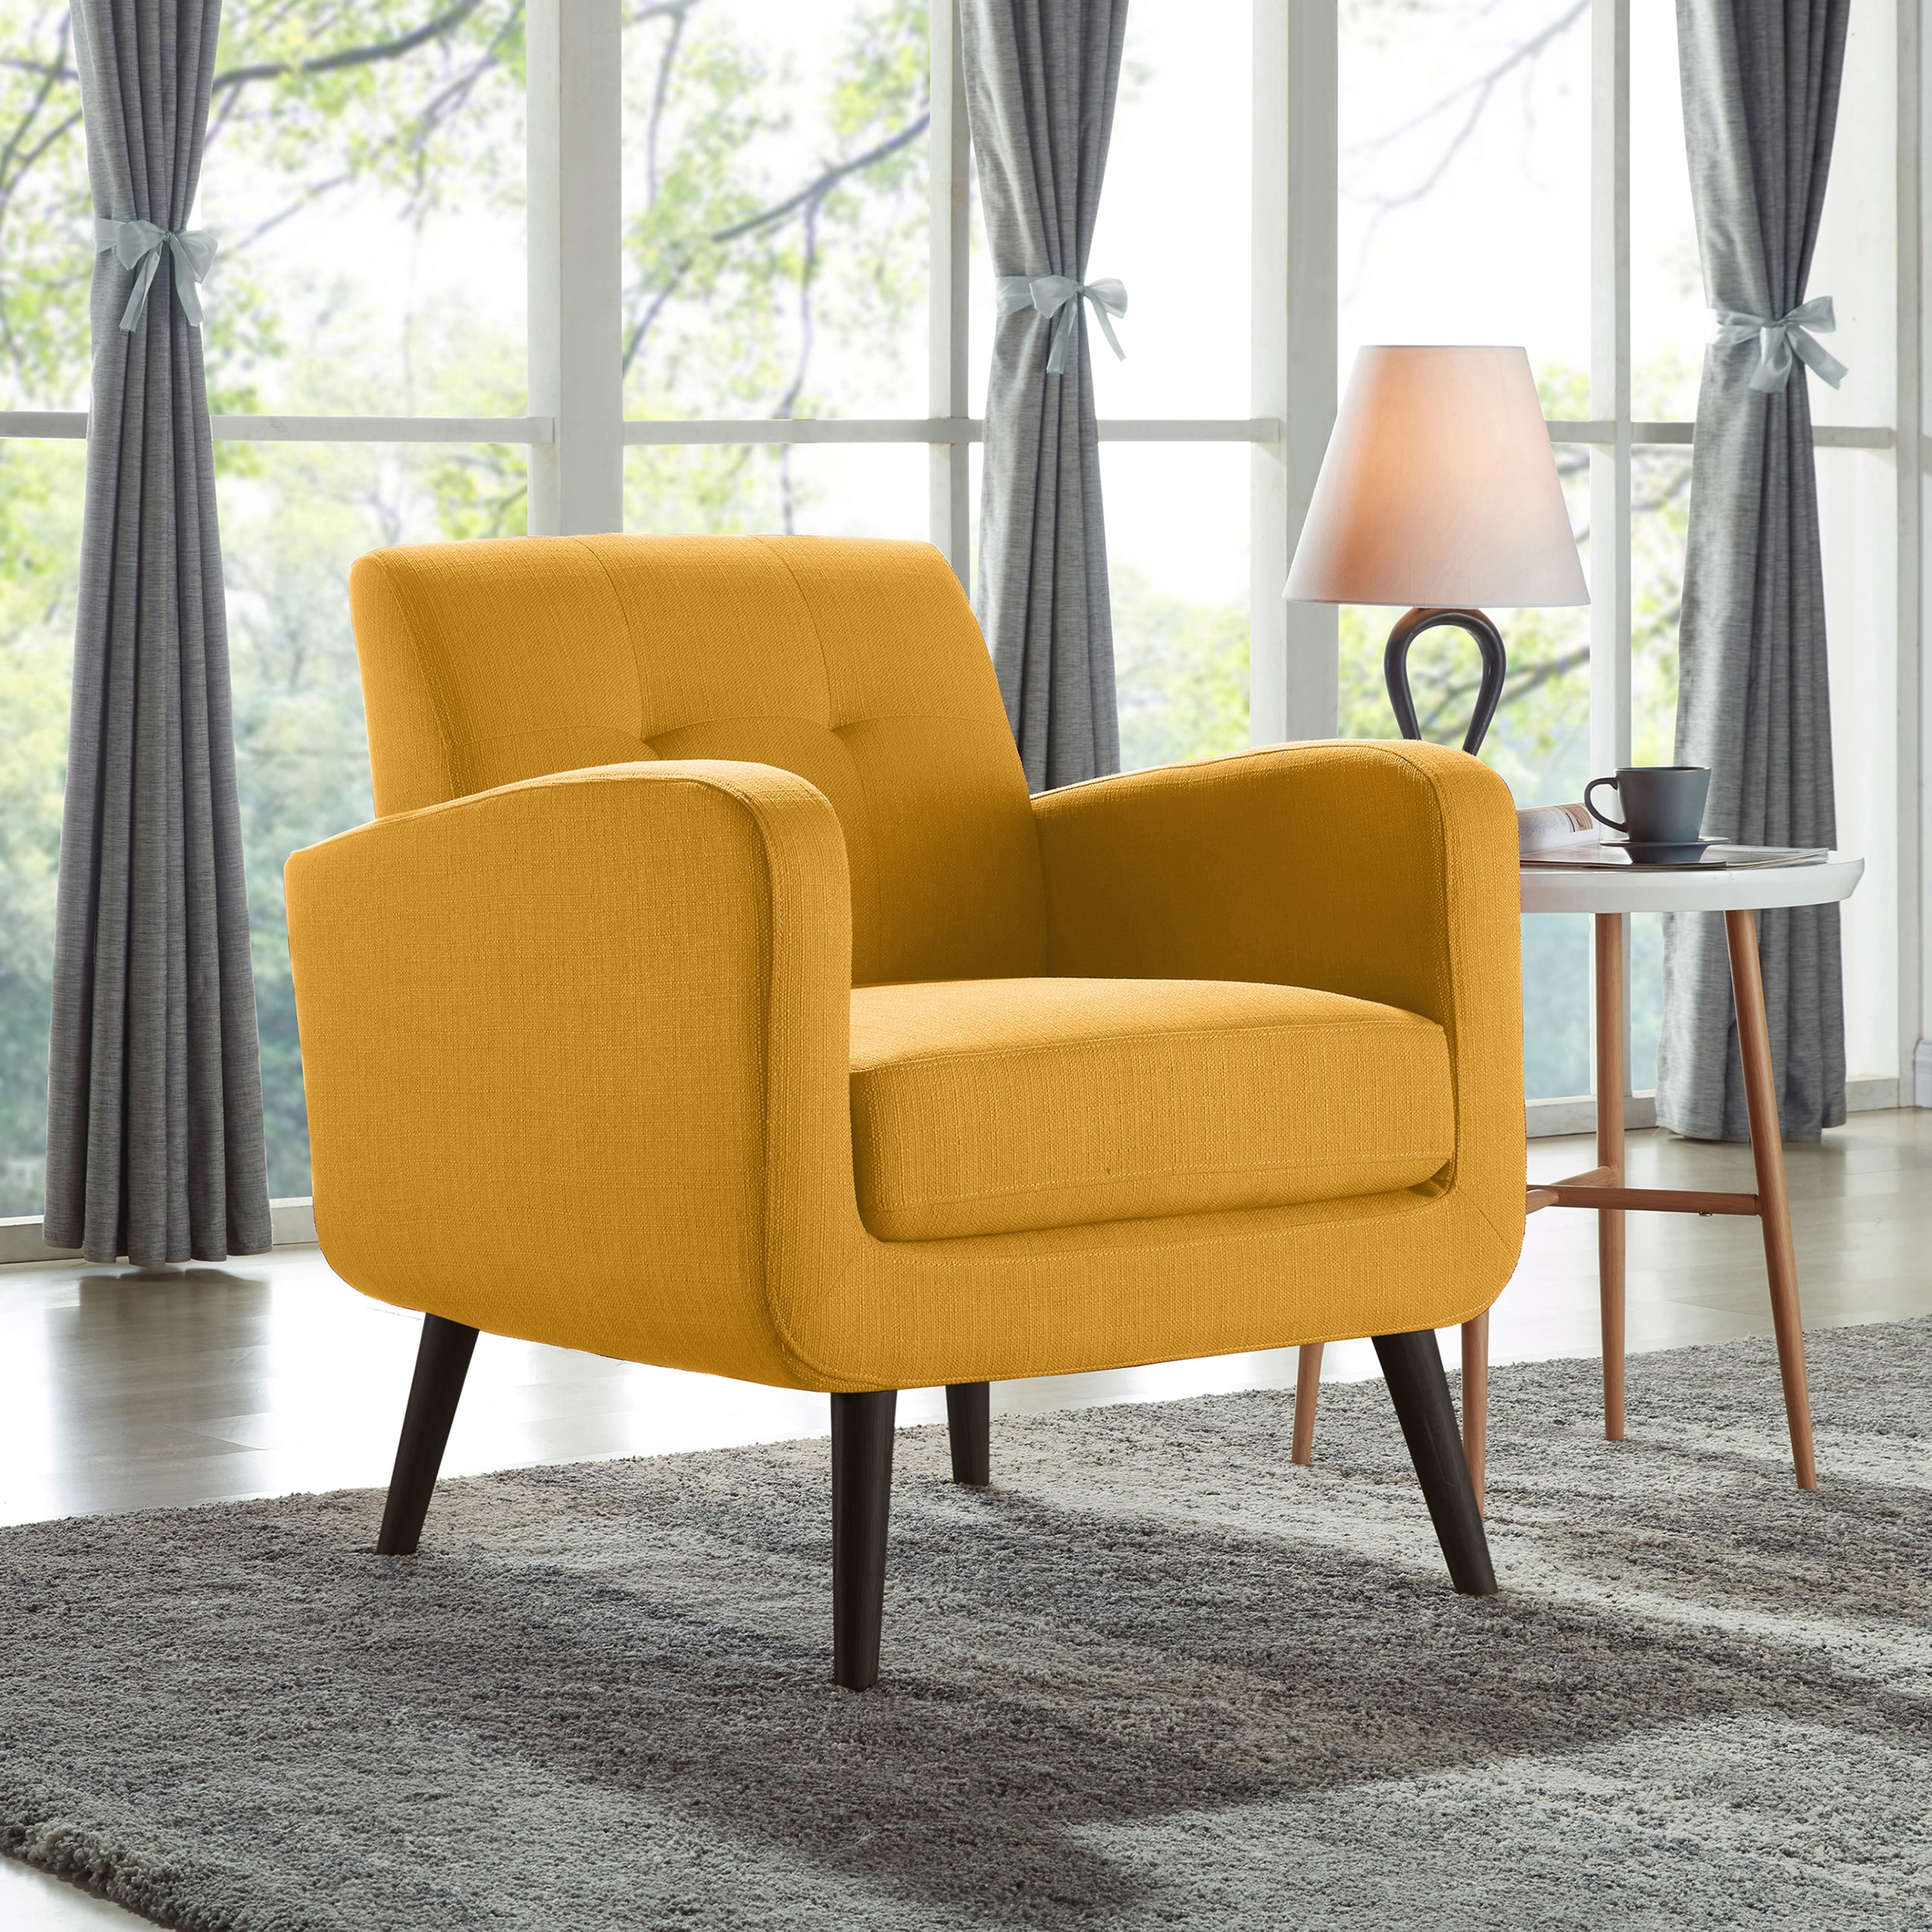 Fabulous Accent Chairs Shop Online At Overstock Dailytribune Chair Design For Home Dailytribuneorg